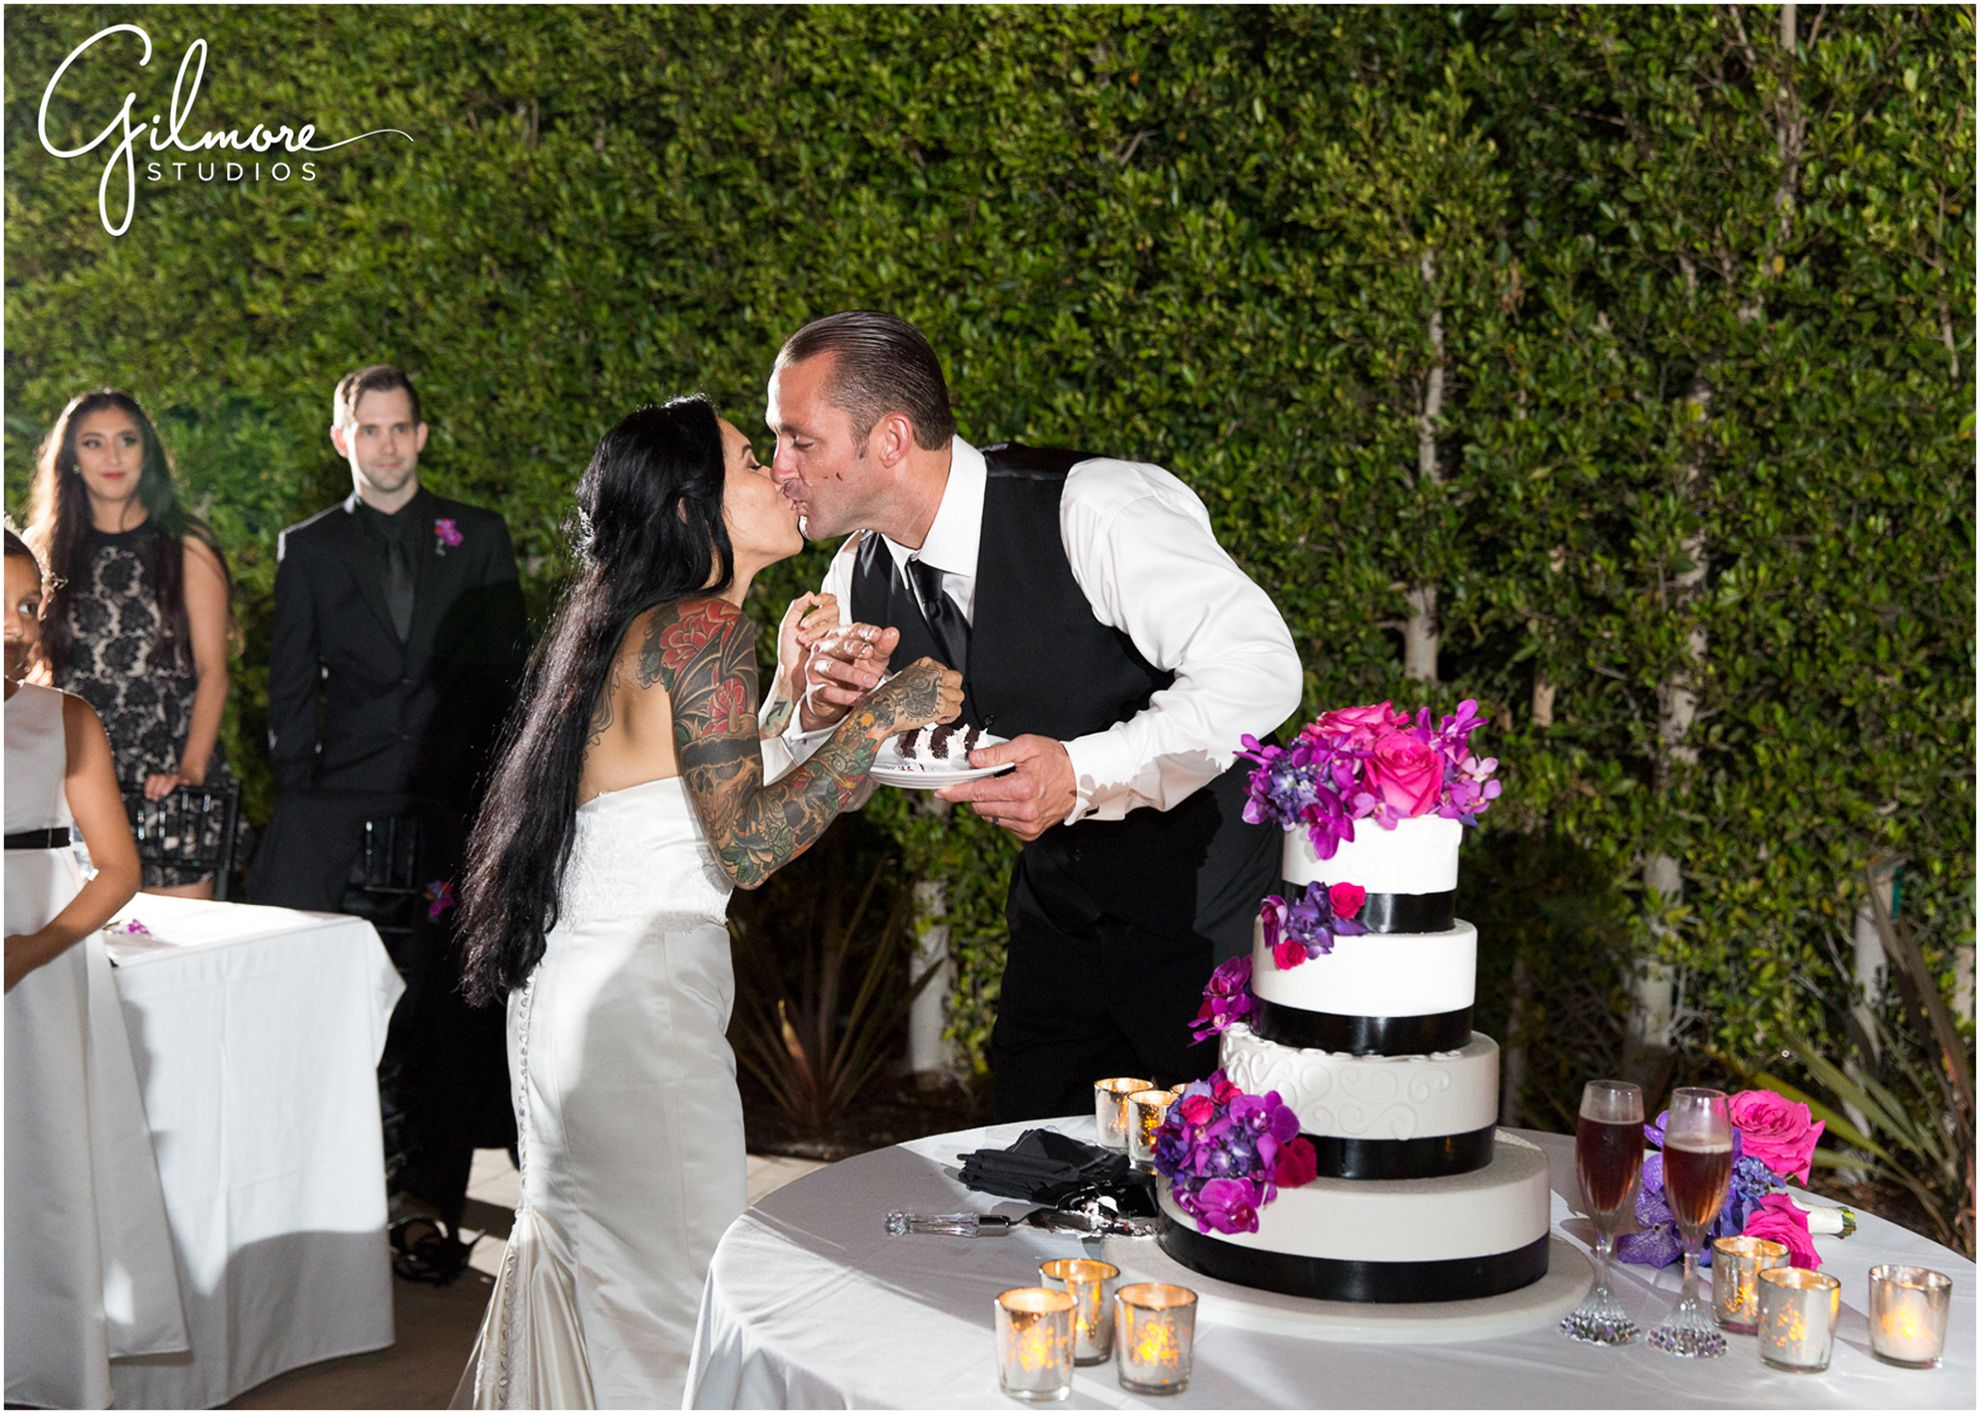 Wedding dresses with purple accents  Cut the Cake  tier wedding cake white with purple flowers